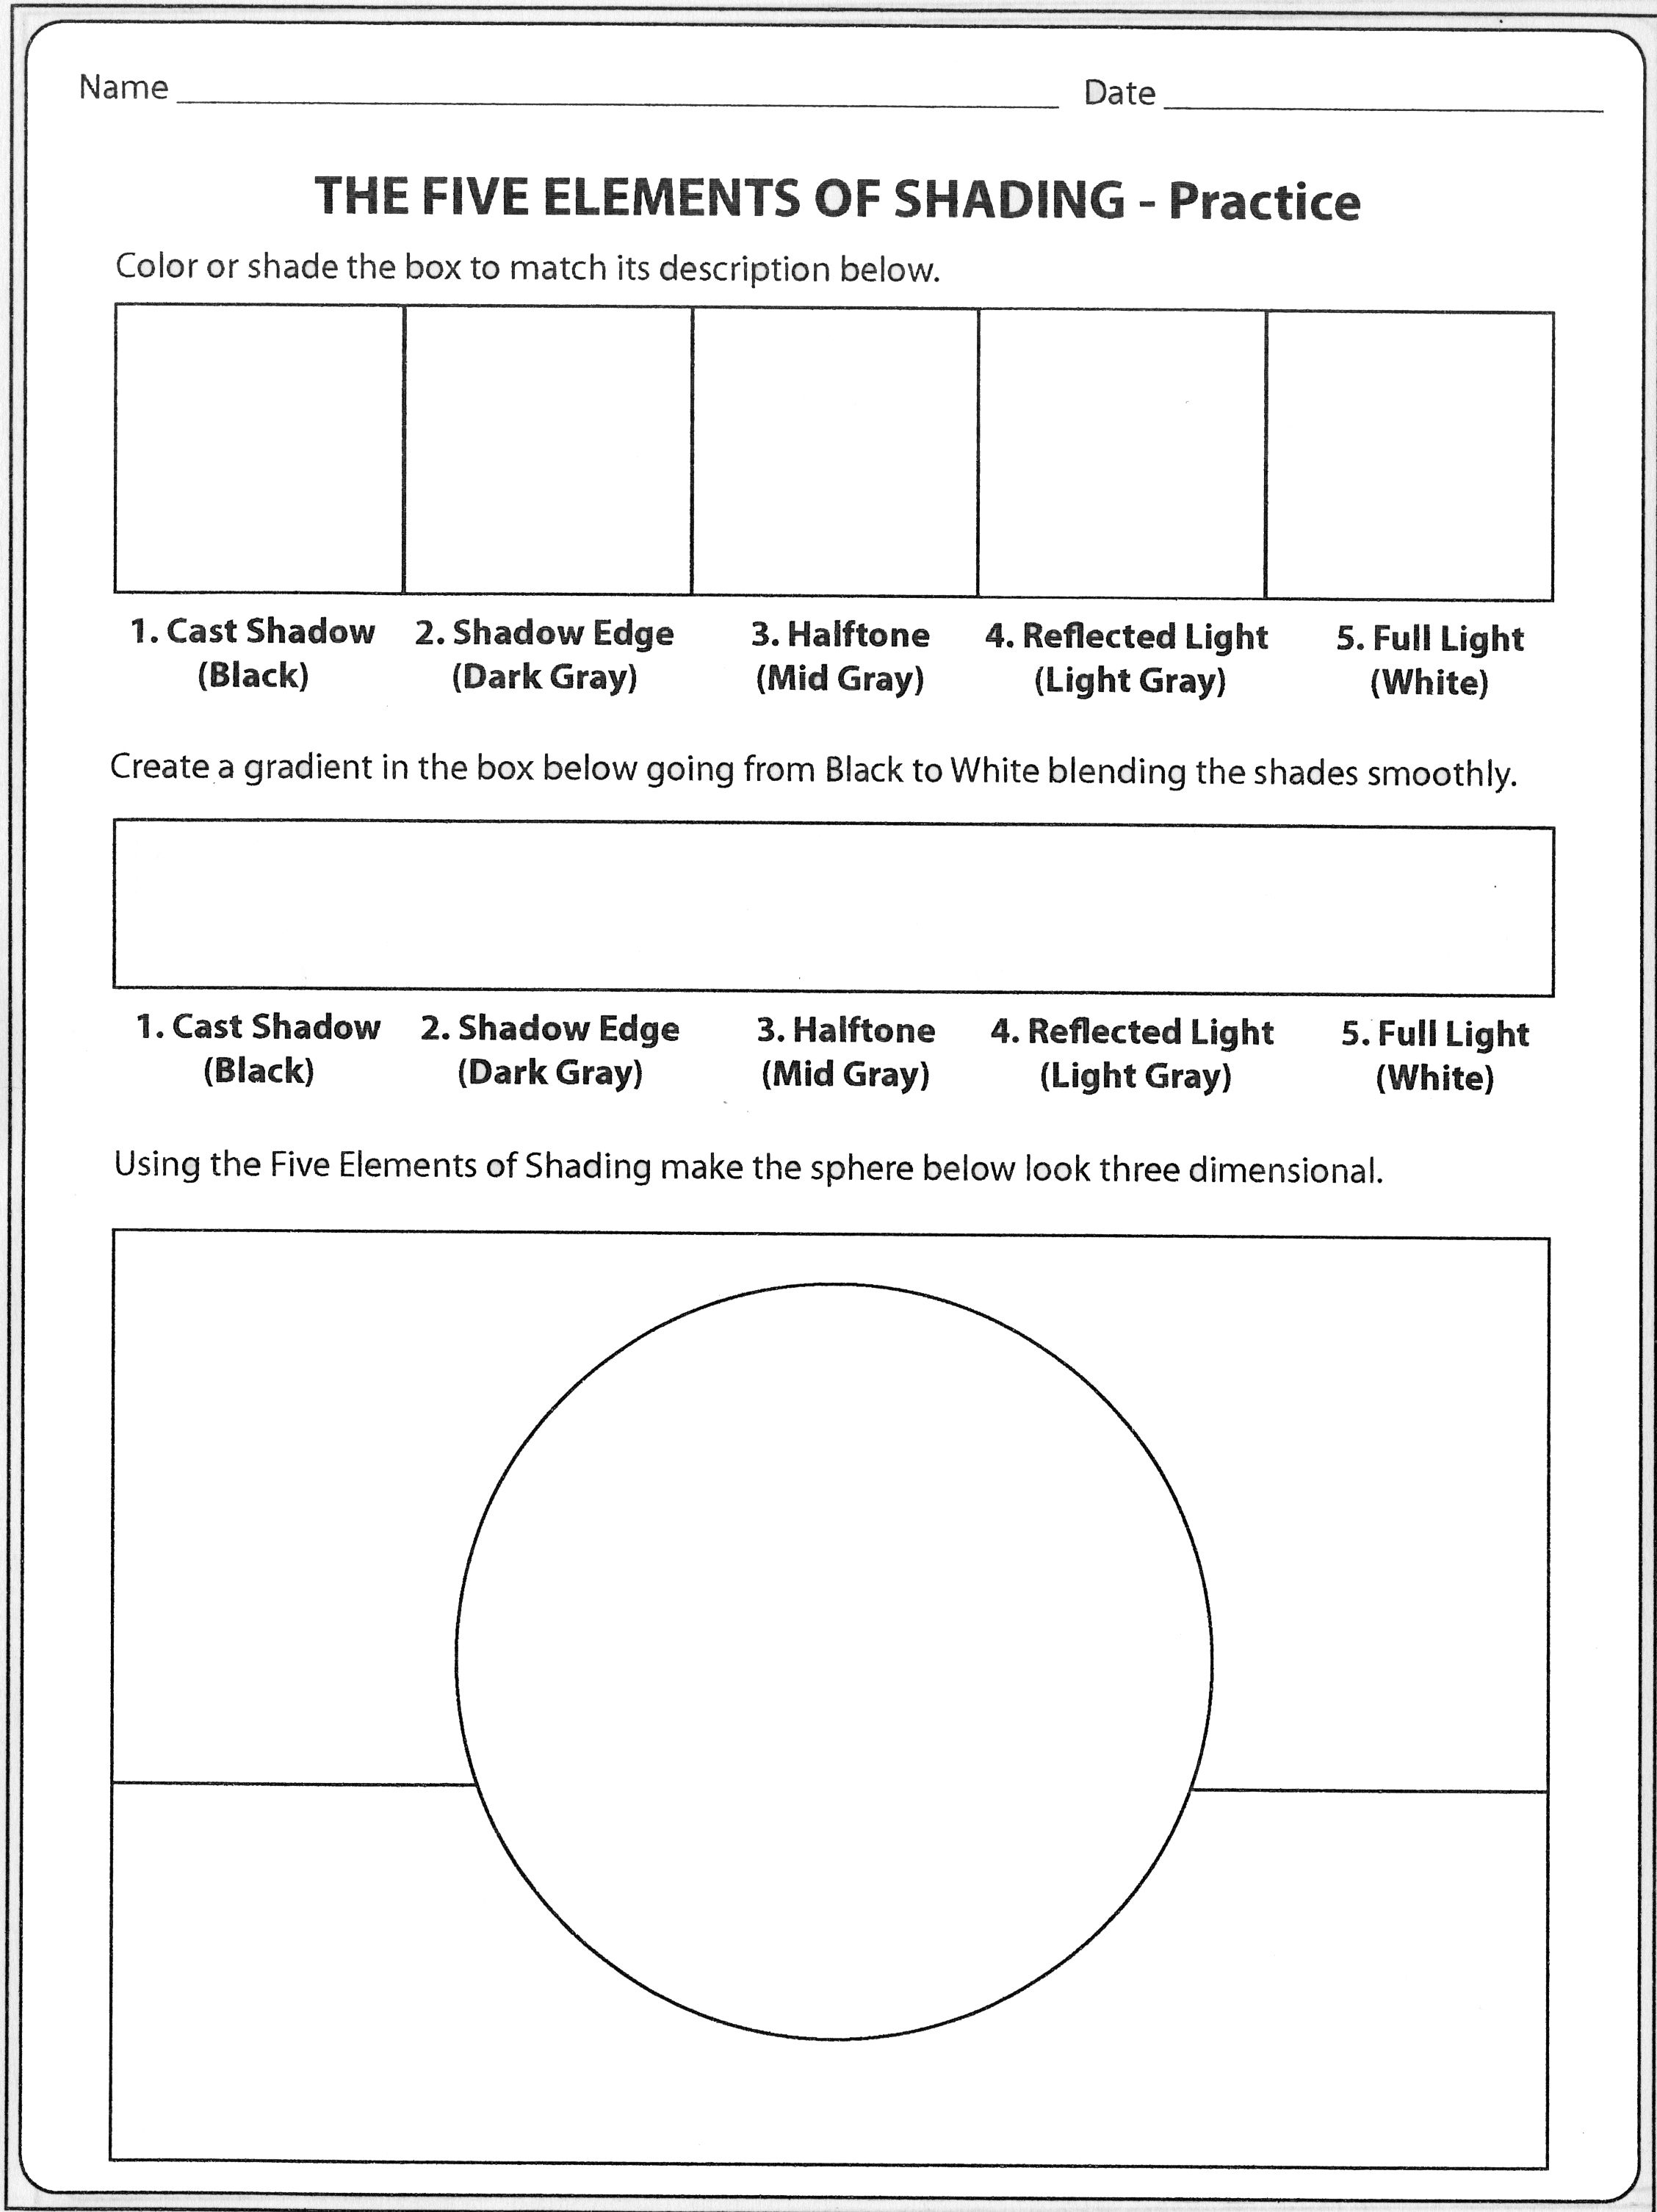 Value Scale Gradient And Shaded Form All In One Worksheet